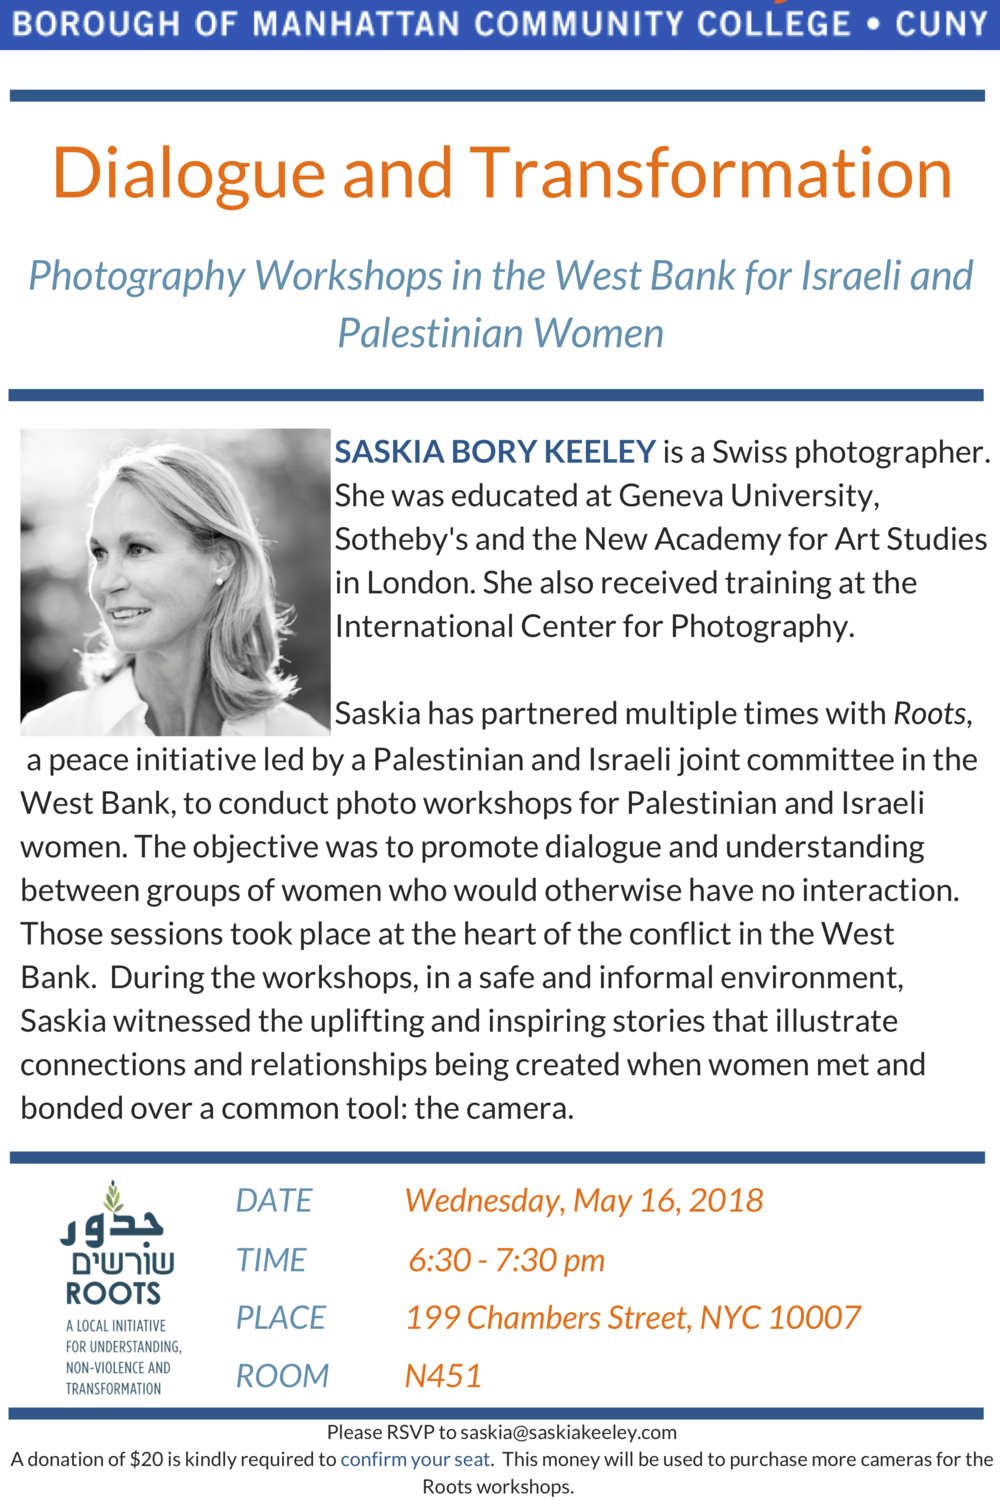 Dialogue and Transformation: Photography Workshops in the West Bank for Israeli and Palestinian Women - Borough of Manhattan Community College | CUNY